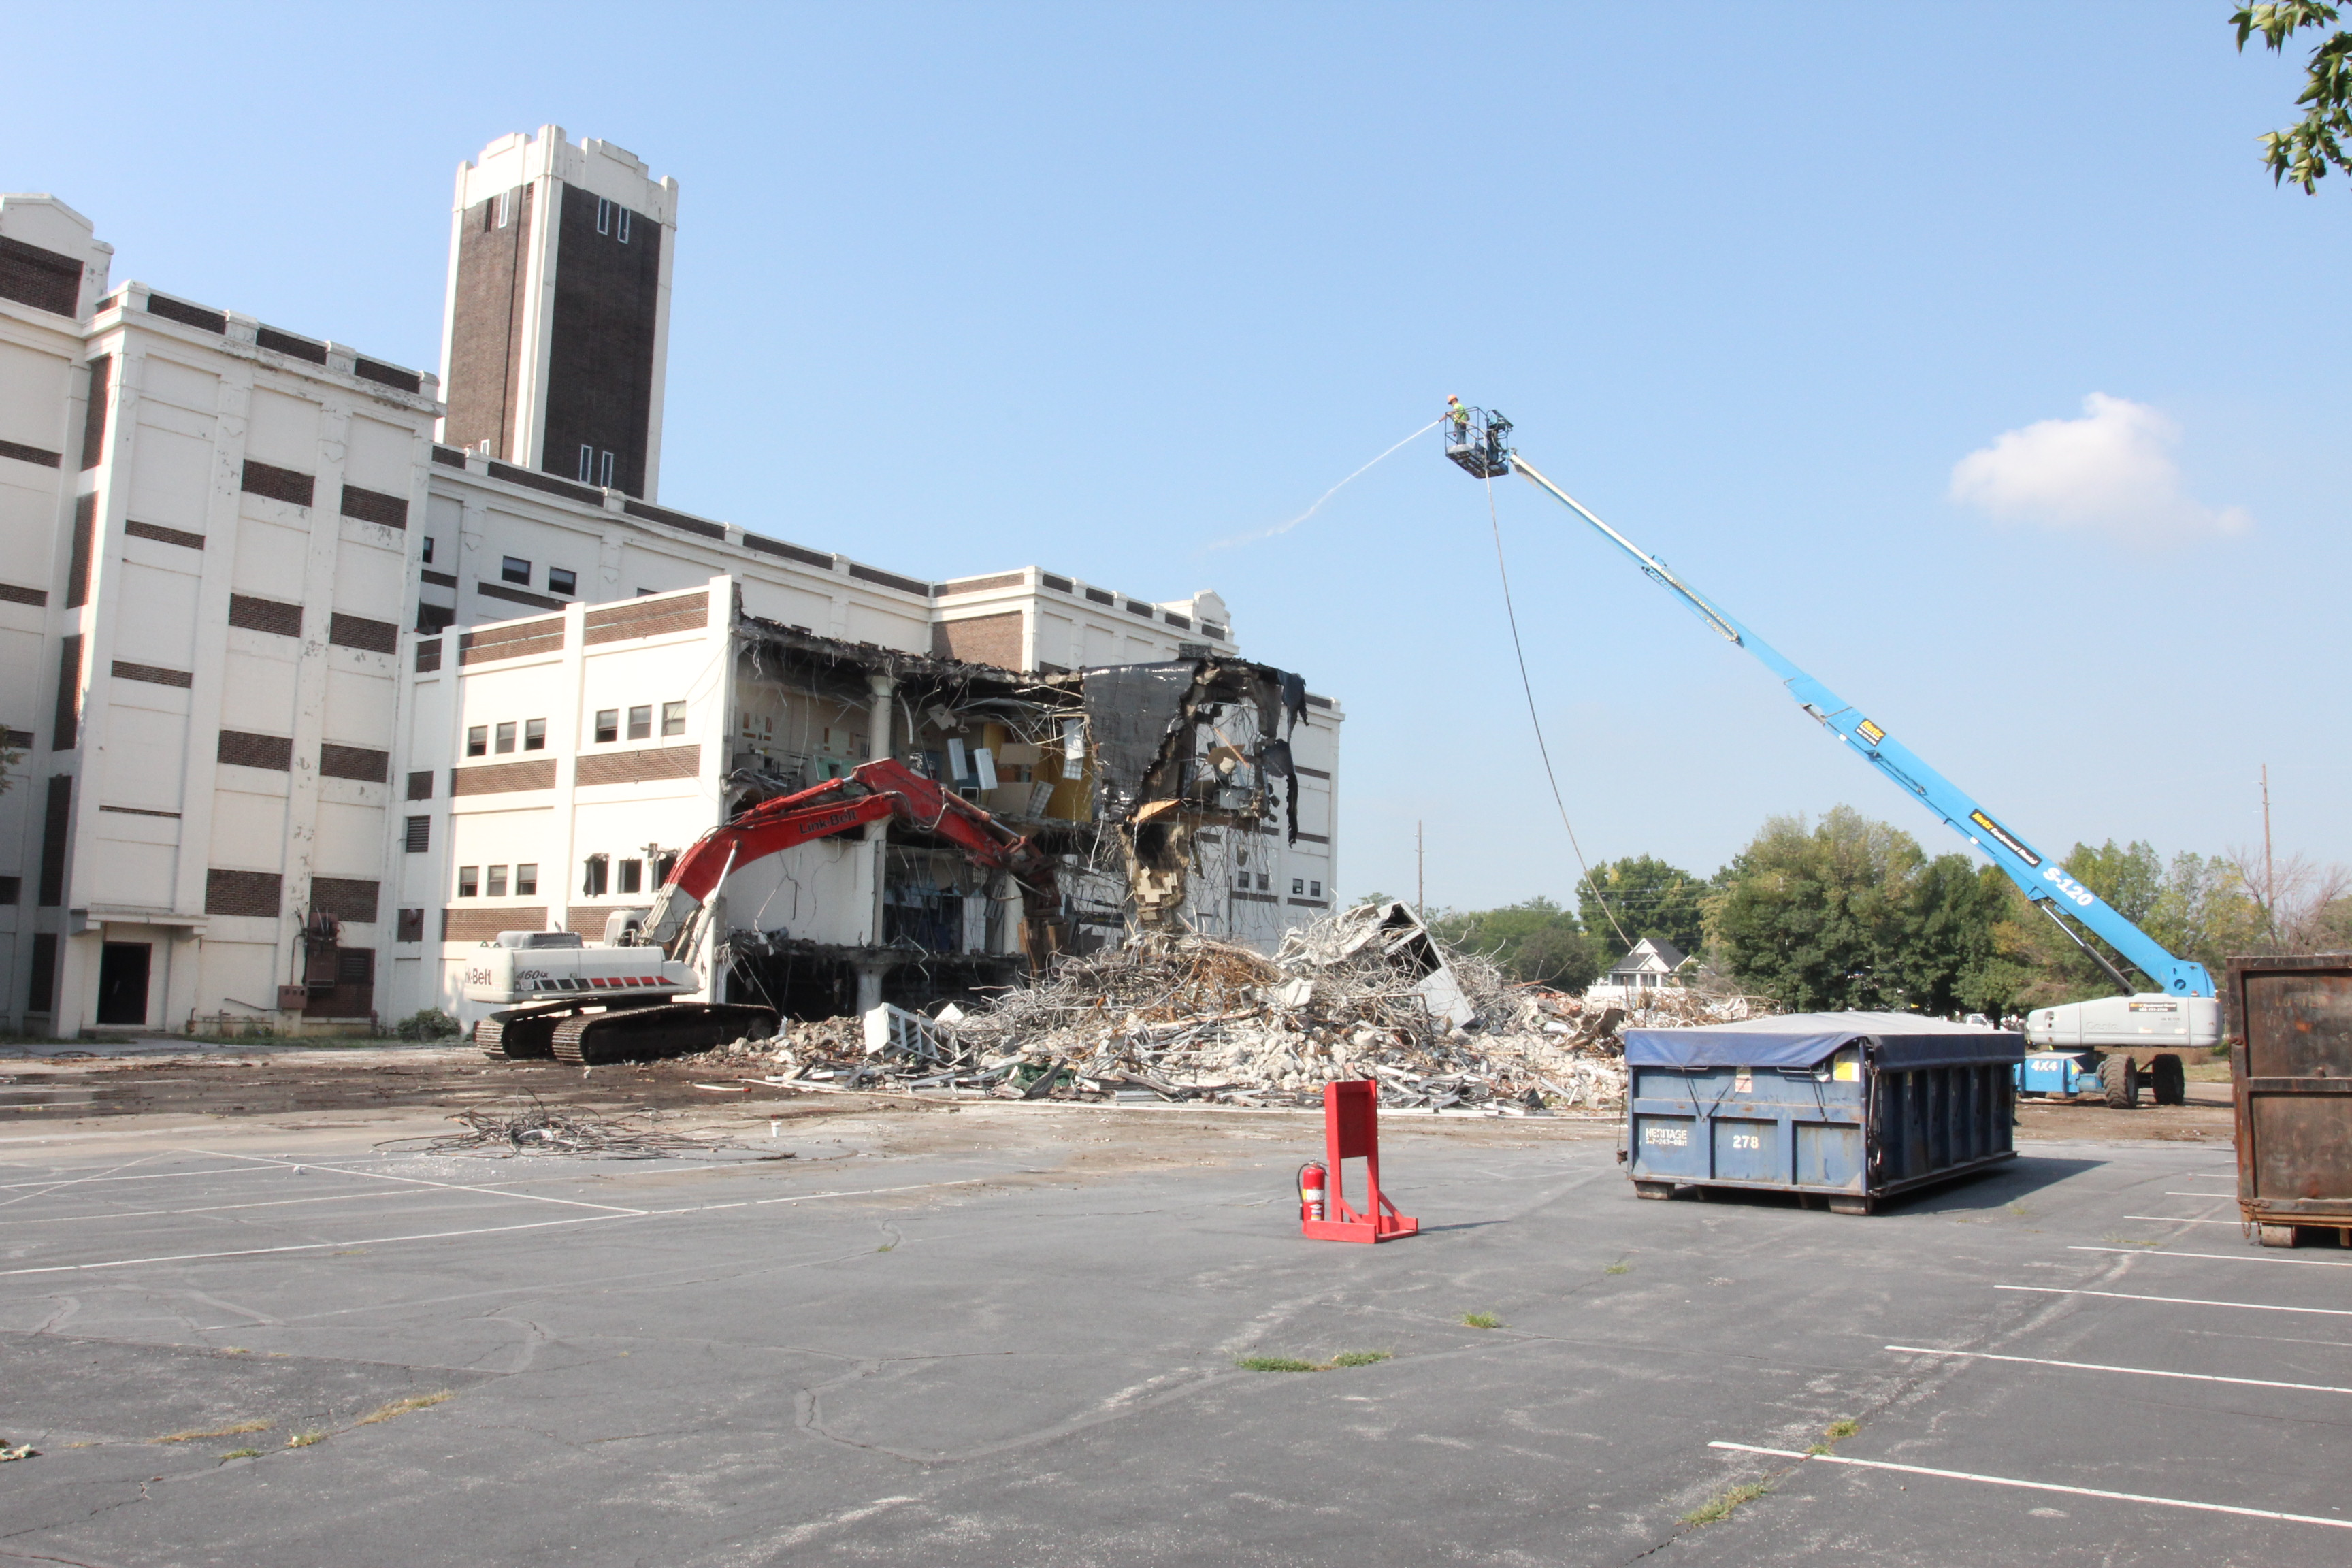 Lilly Demolition